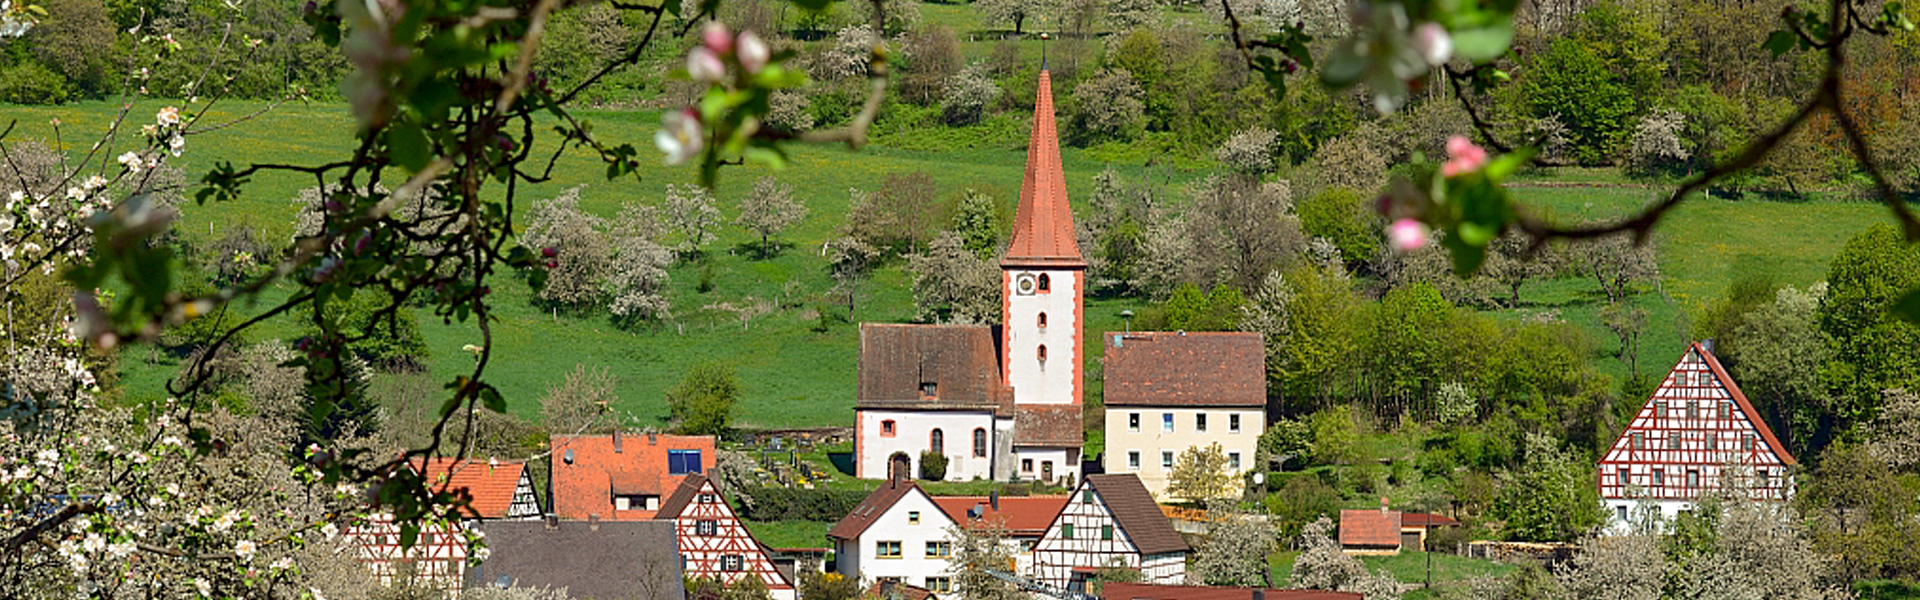 Wandern in Kirchensittenbach